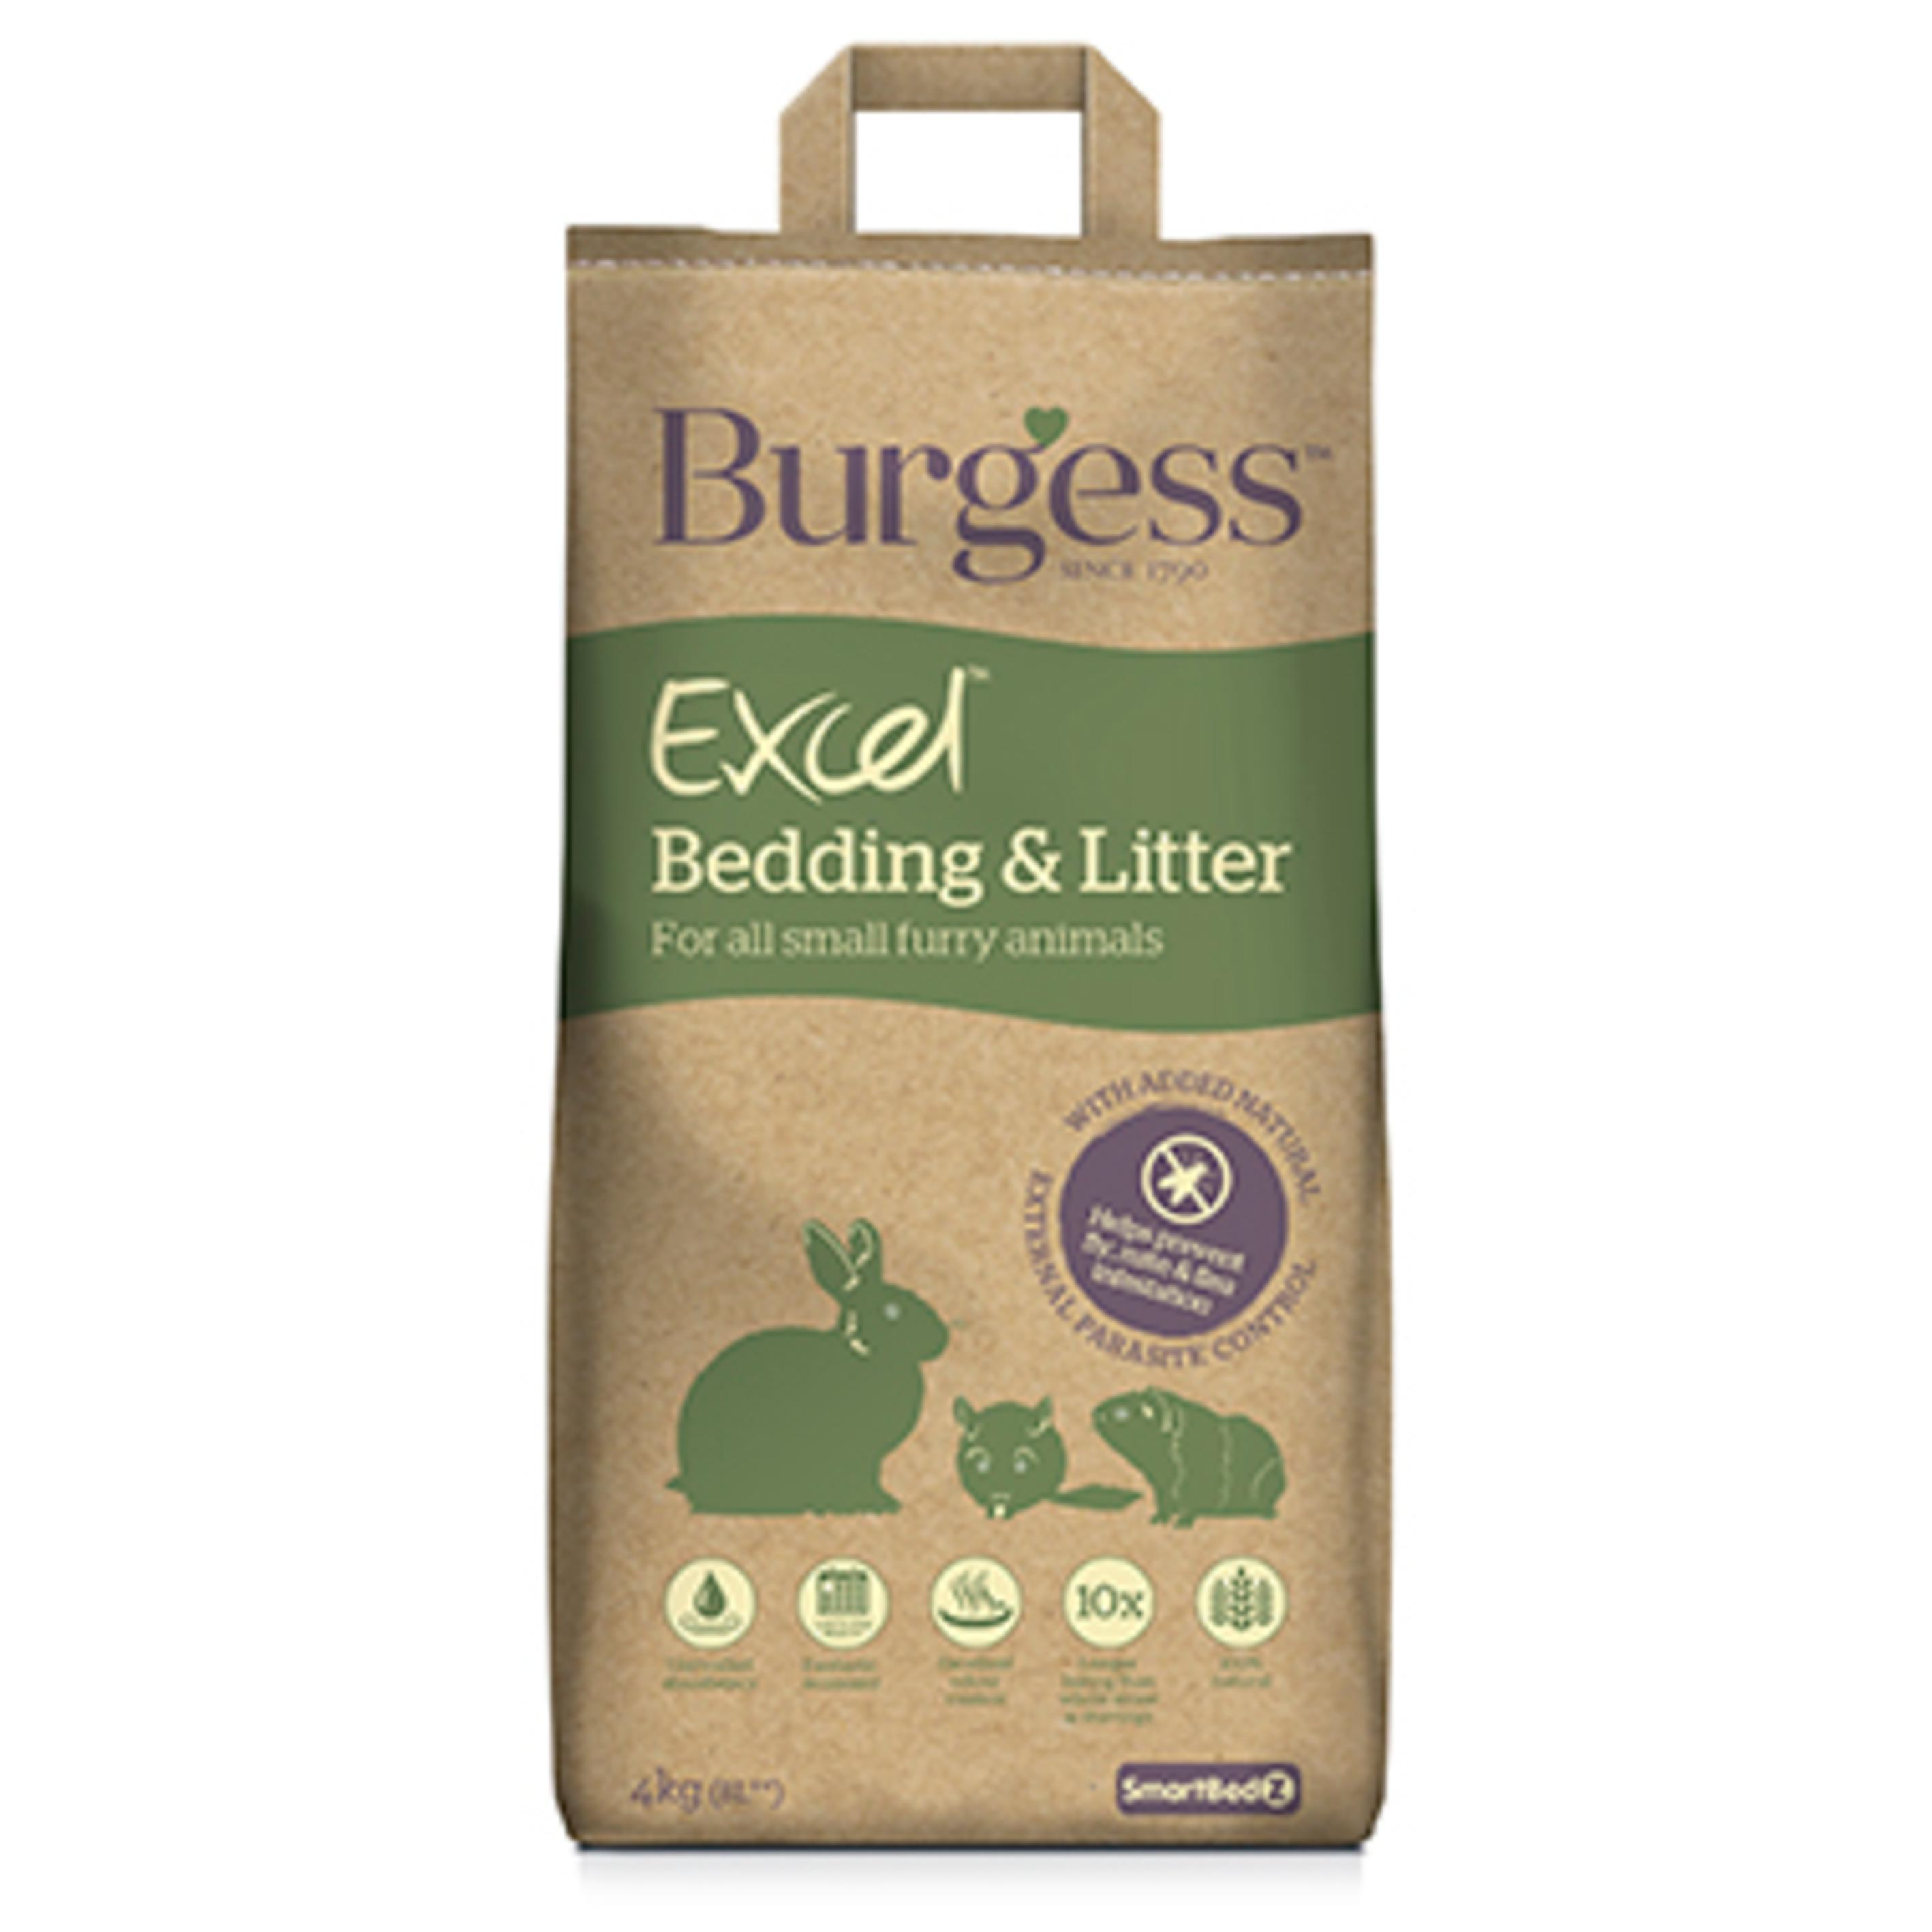 Burgess Excel Bedding and Litter